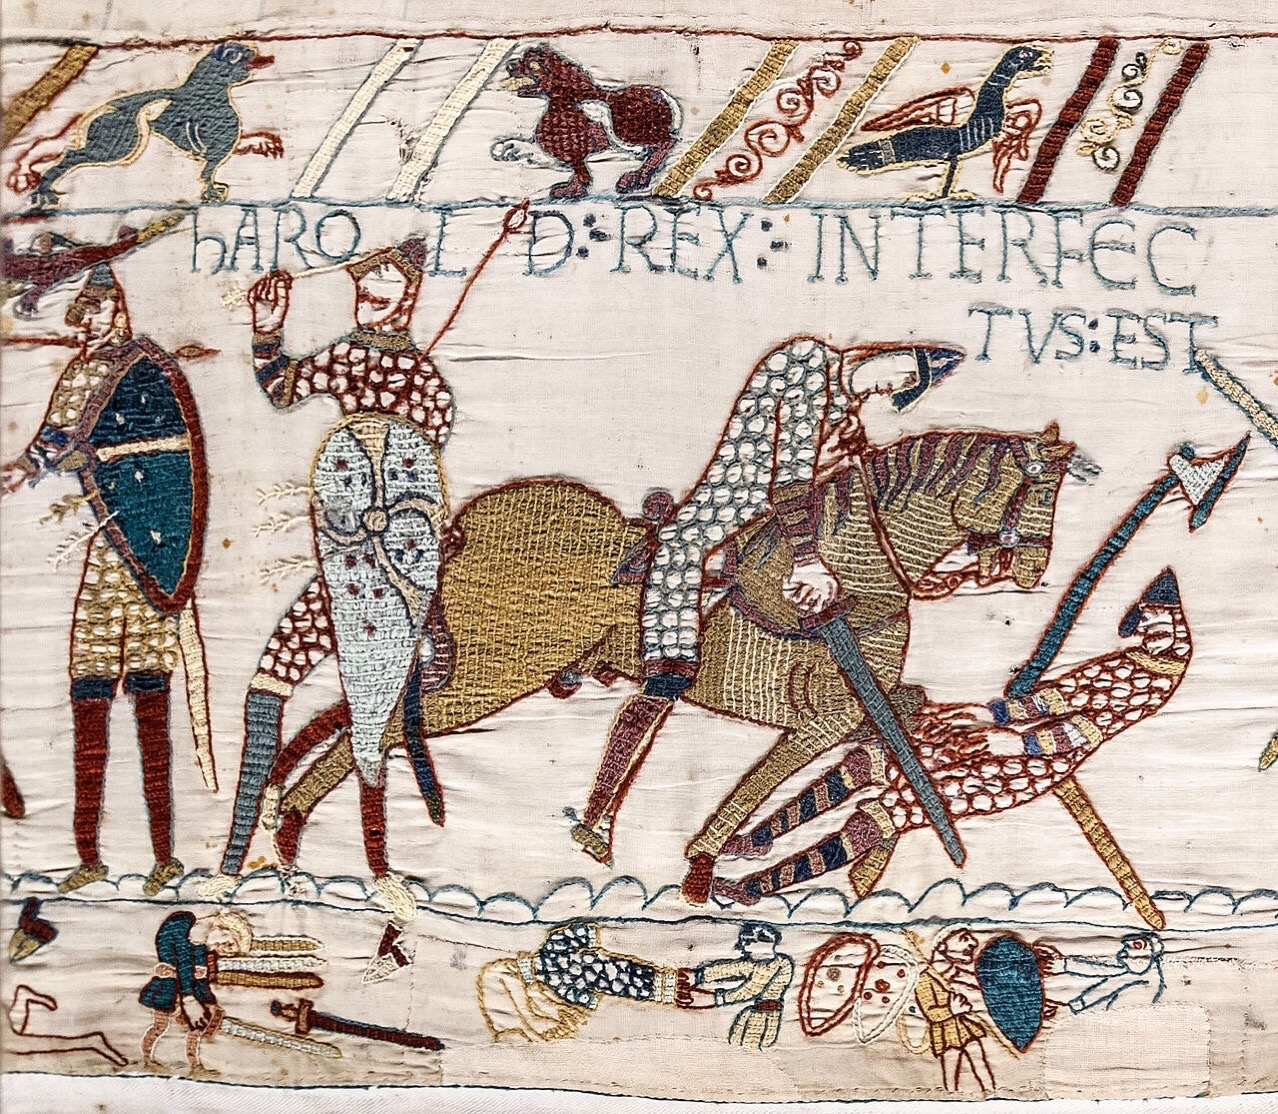 Detail of the Bayeux Tapestry depicting the battle of hastings (and, elsewhere, Halley's Comet)